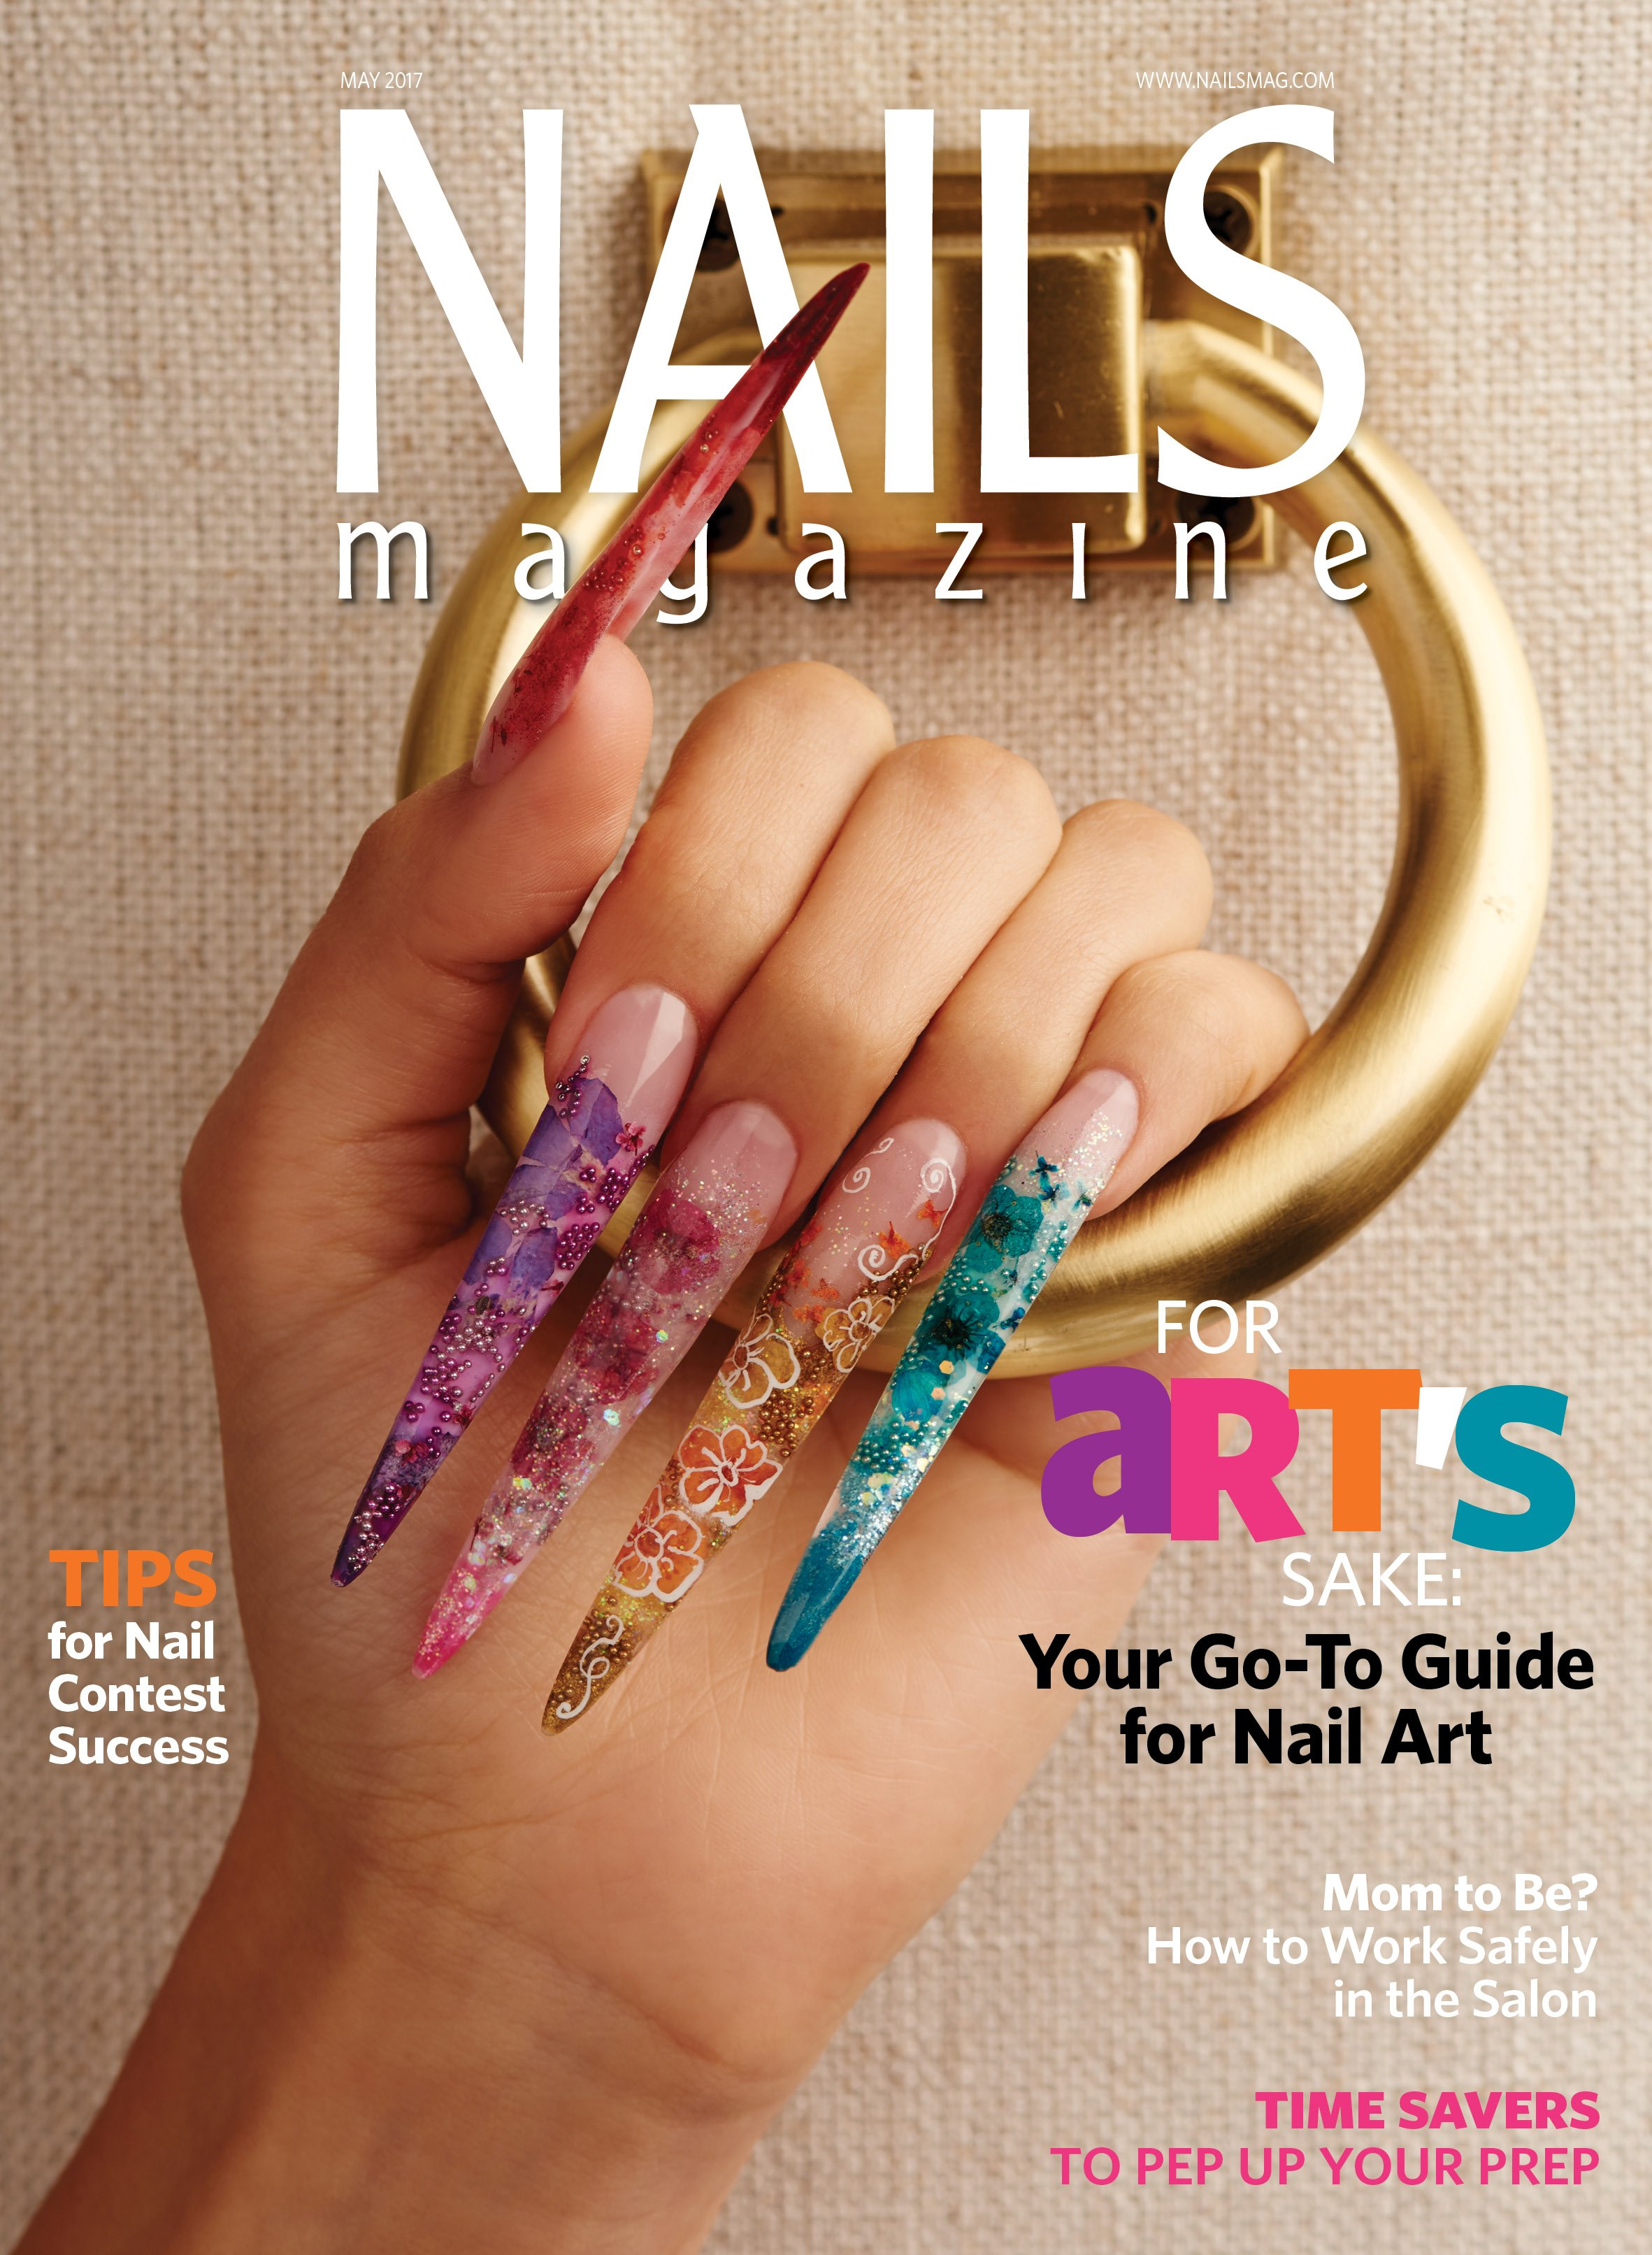 NAILS Magazine | May 2017 Issue